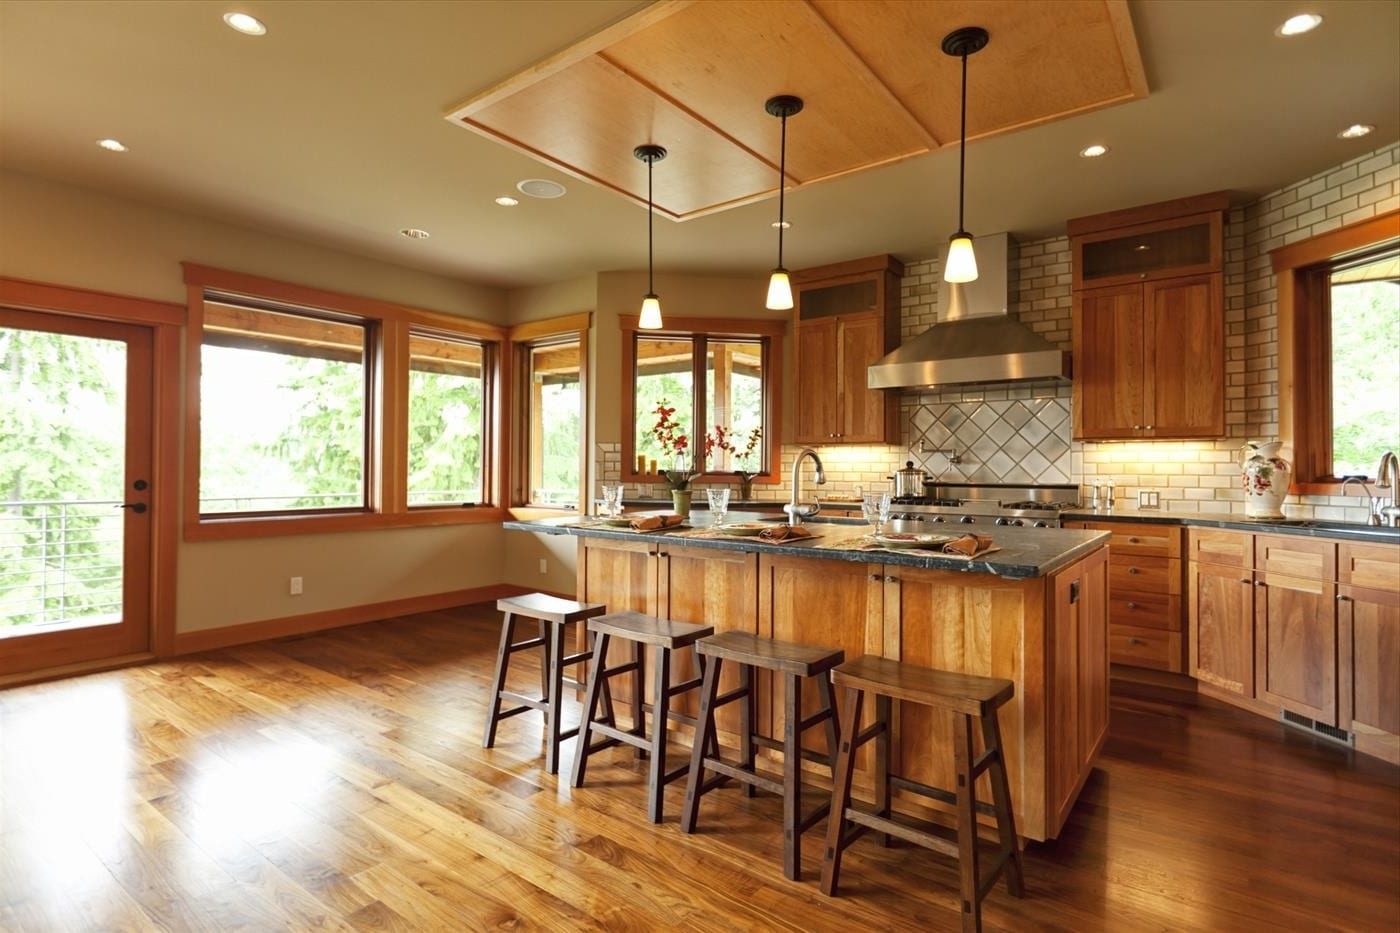 Home Remodeling State College Pa Home Remodeler Company Master Renovators Builders Inc